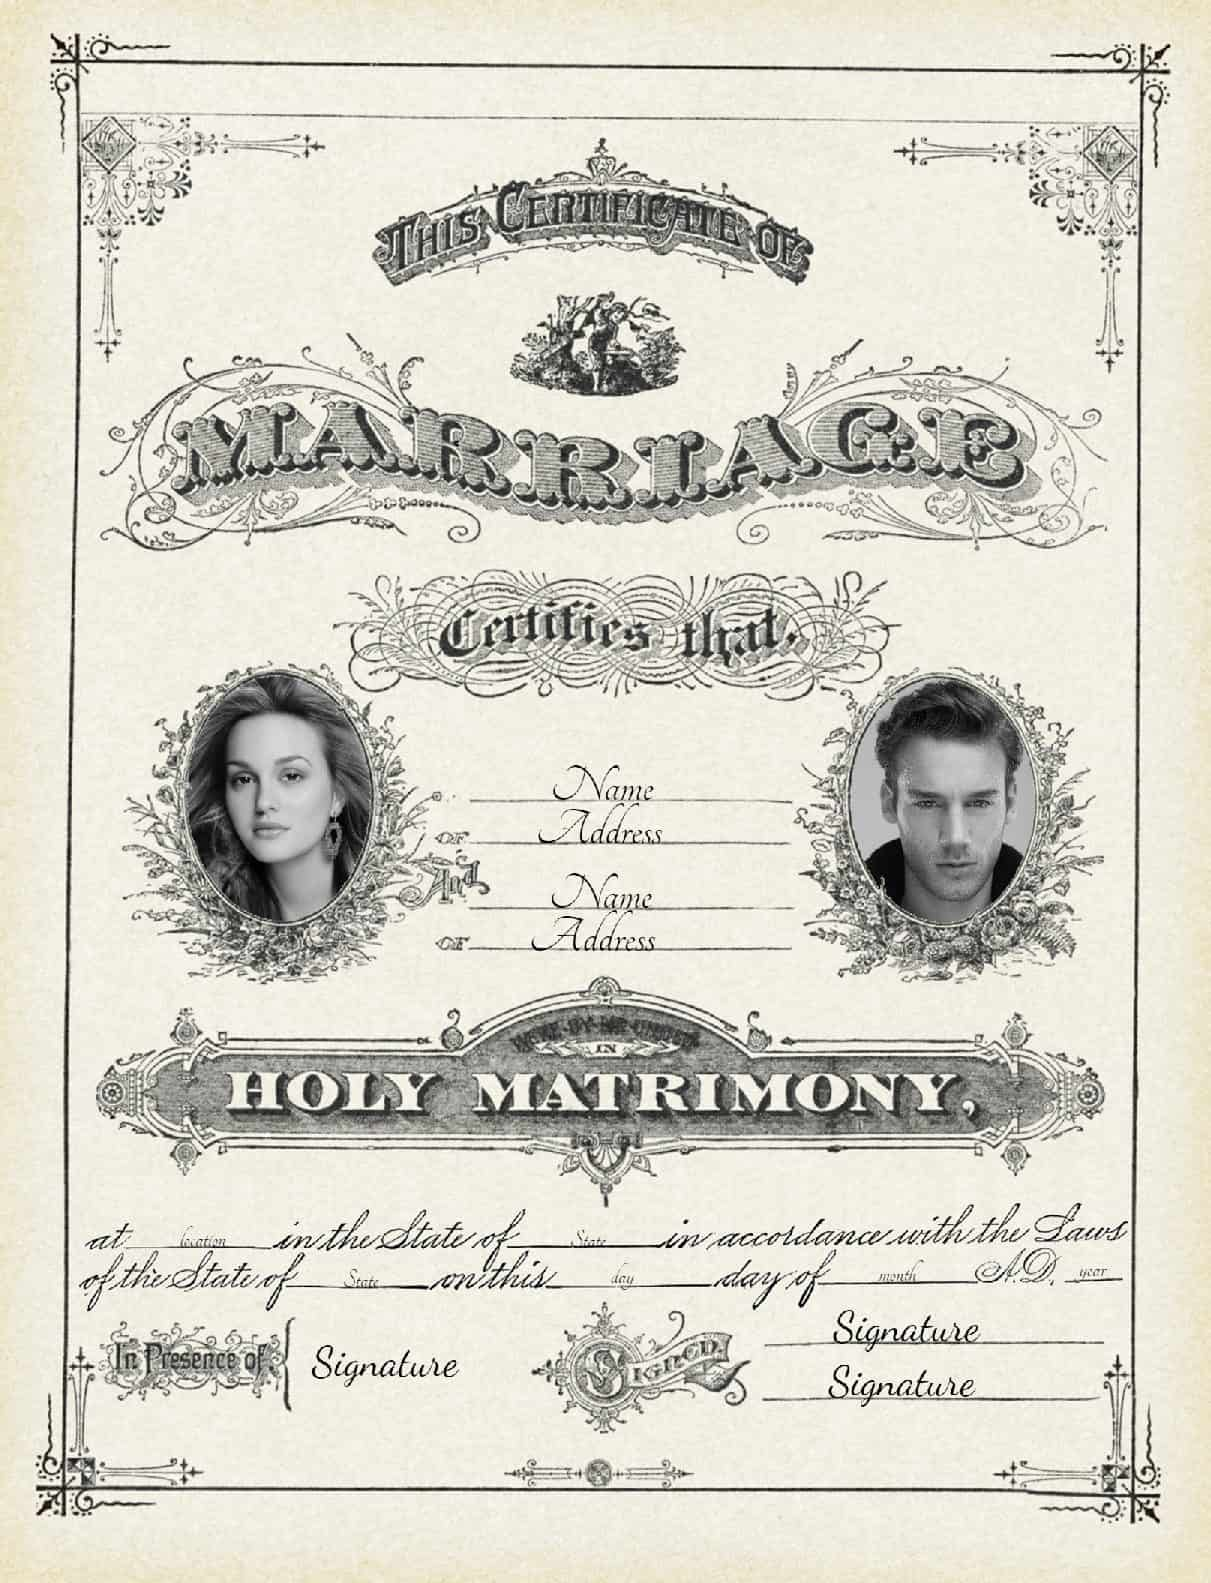 Free Marriage Certificate Template | Customize Online then ...